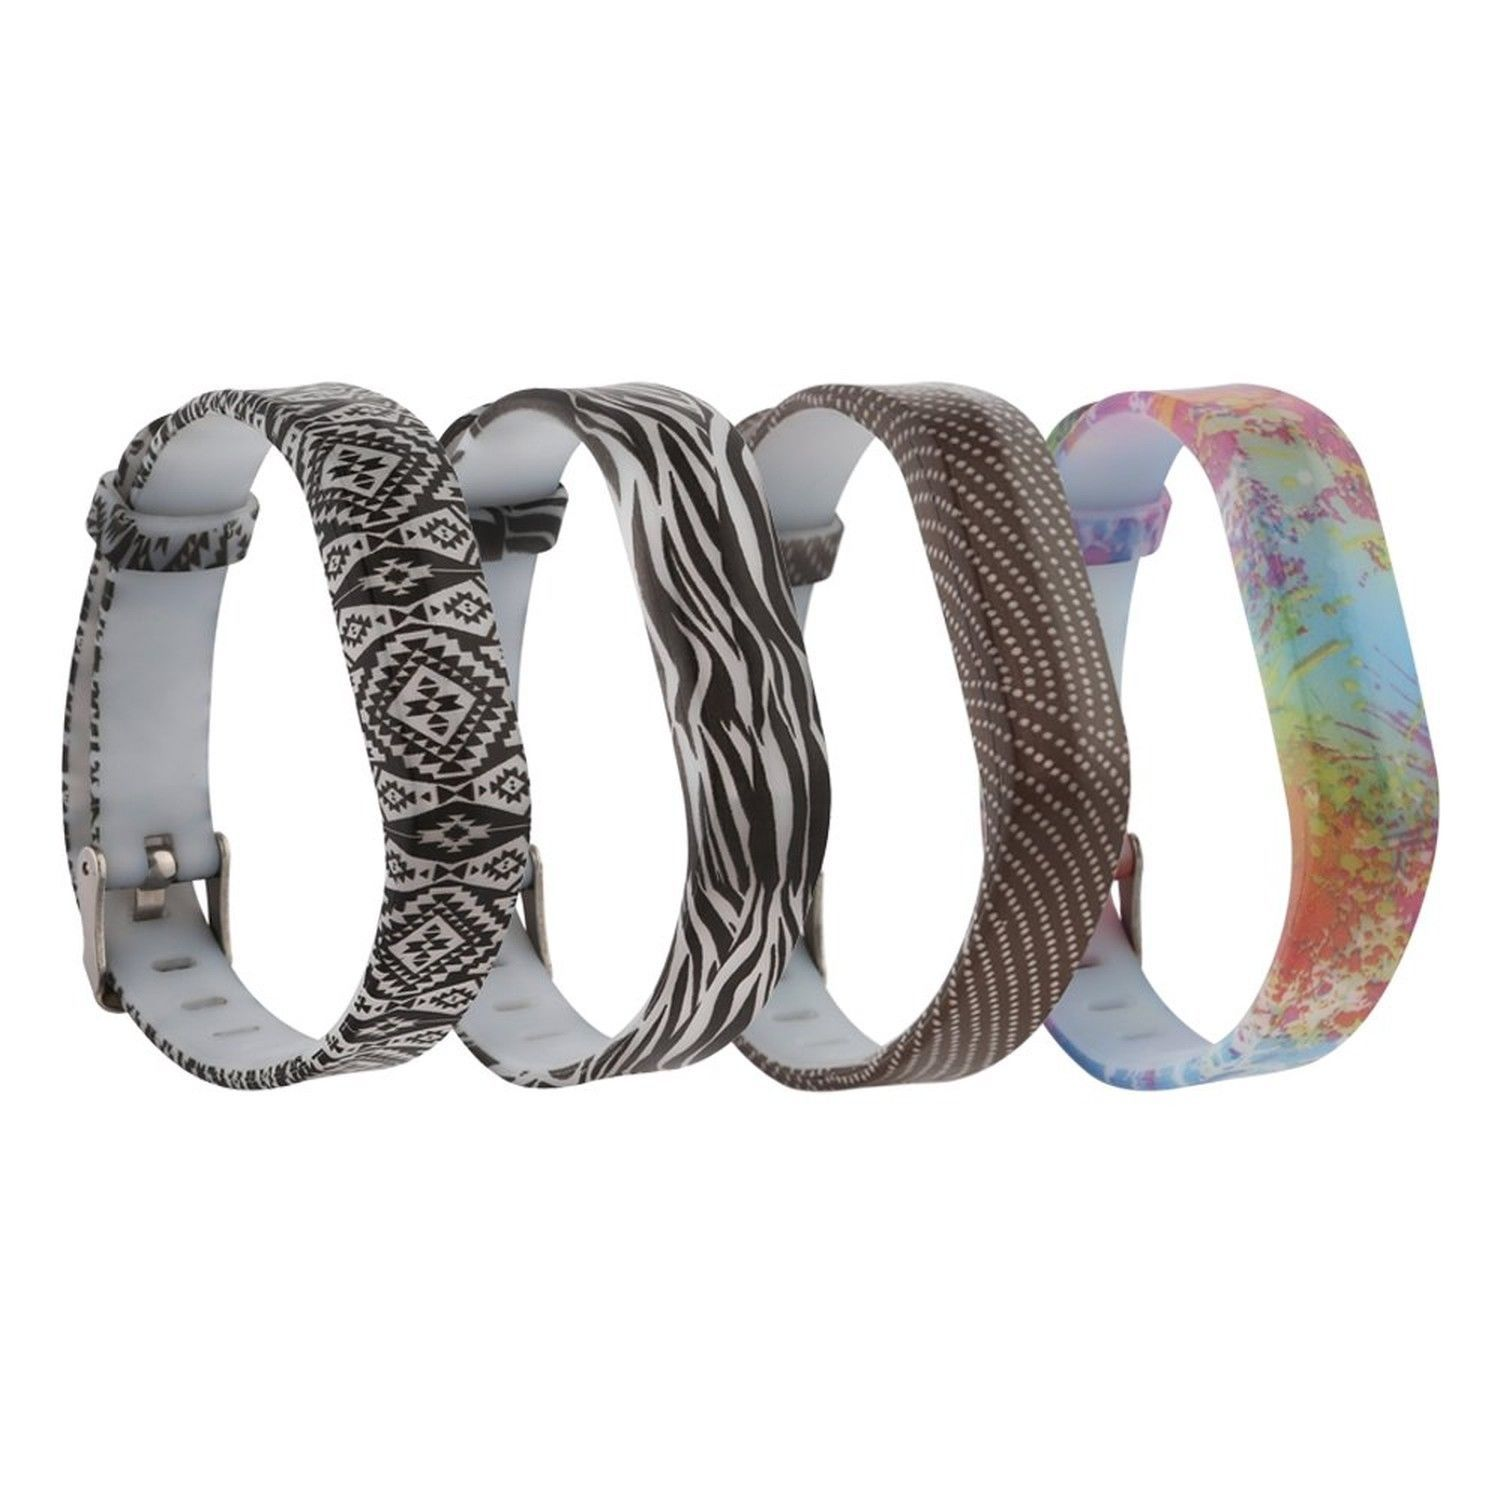 Wild Styles 4 Pack Wristband Band Bracelet Strap Accessories For Fitbit Flex 2 Ebay Fitbit Wristband Bracelet Band